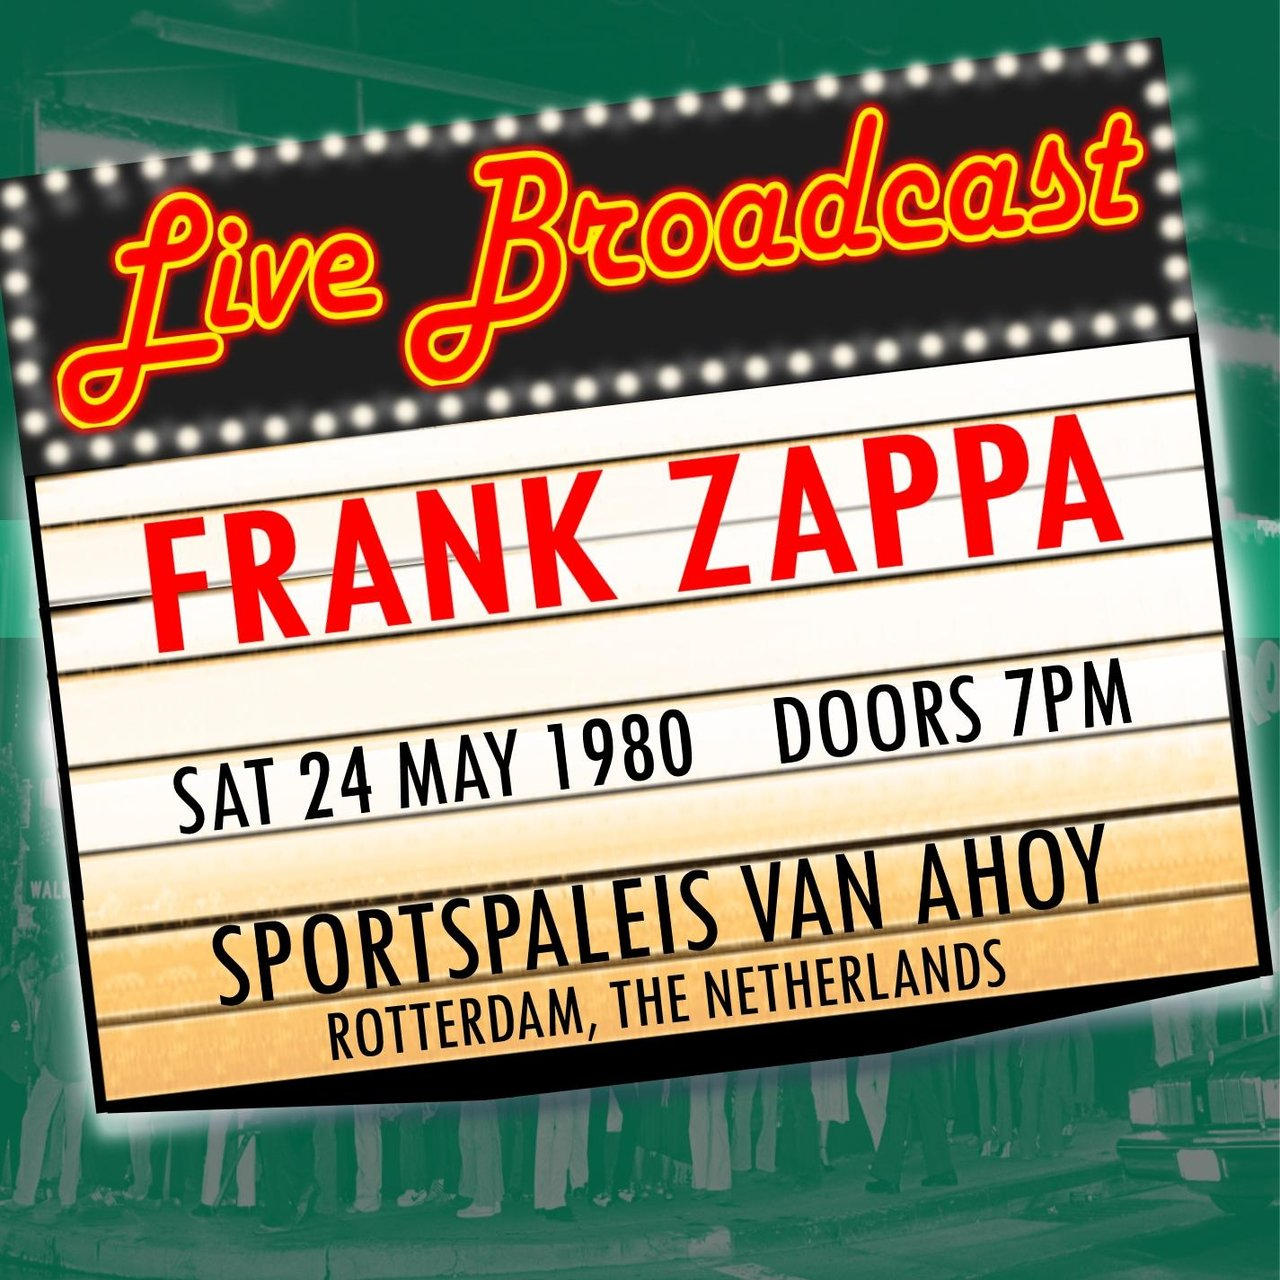 Live Broadcast 24th May 1980 Sportpaleis Van Ahoy